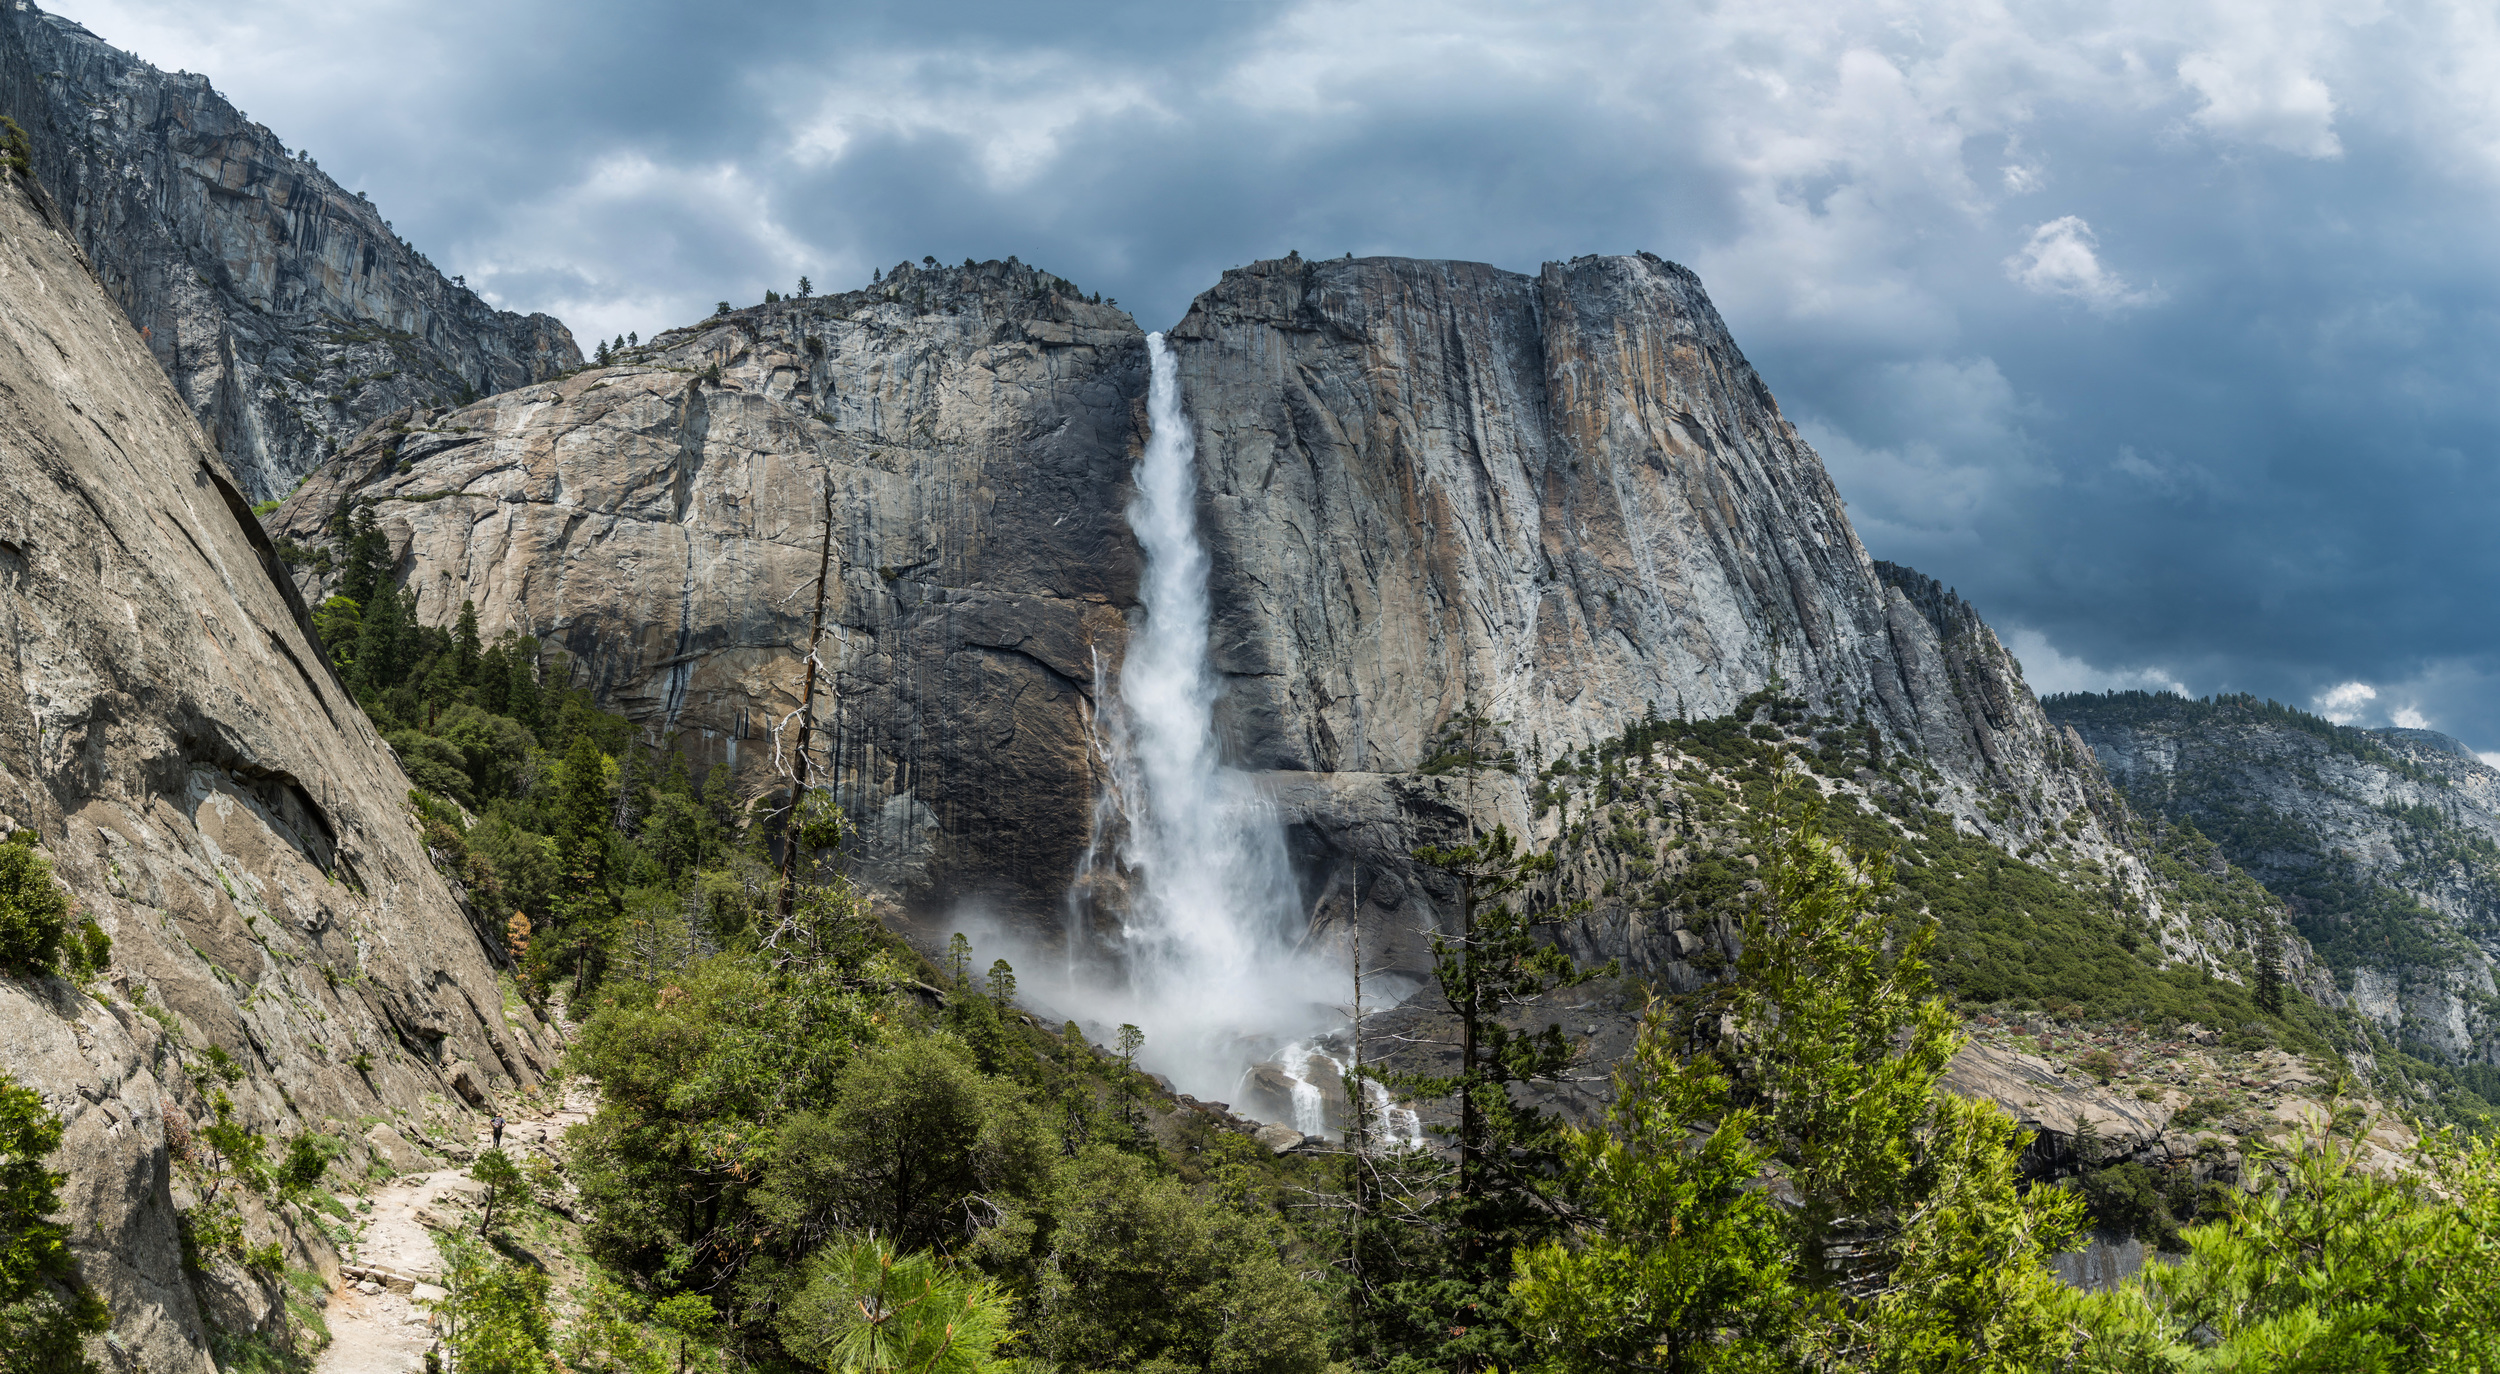 A view from the trail approaching Yosemite Falls. Home of The Bearded Man's accidental shower and subsequent 'But I was just toweling off, Officer' incident.